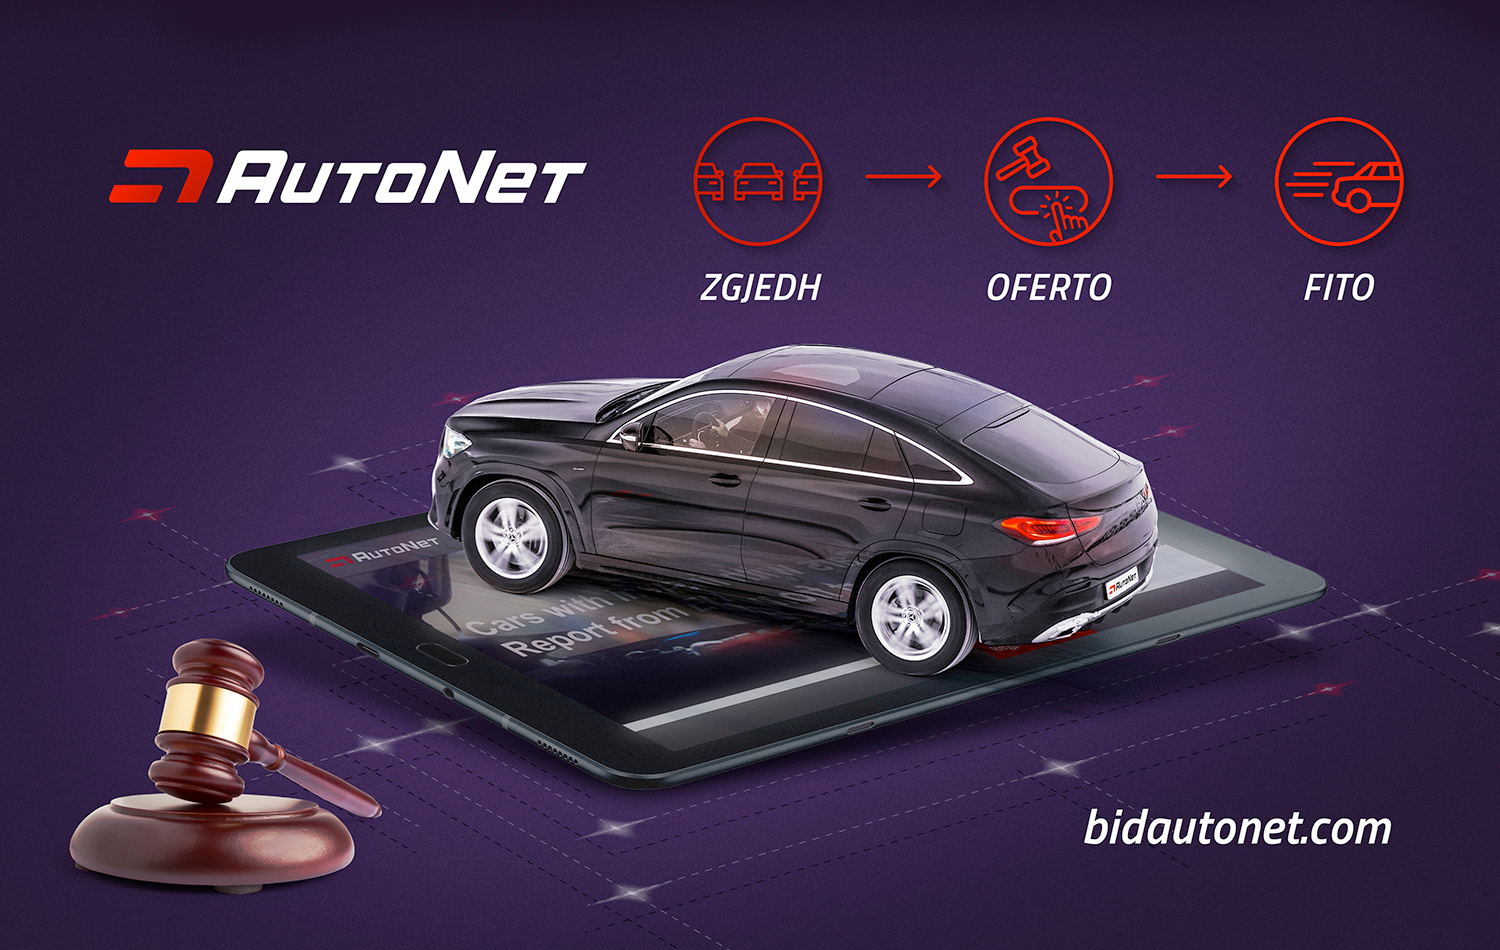 Honk a bid for Autonet: The First Online Auction System bringing international standards in Kosovo!